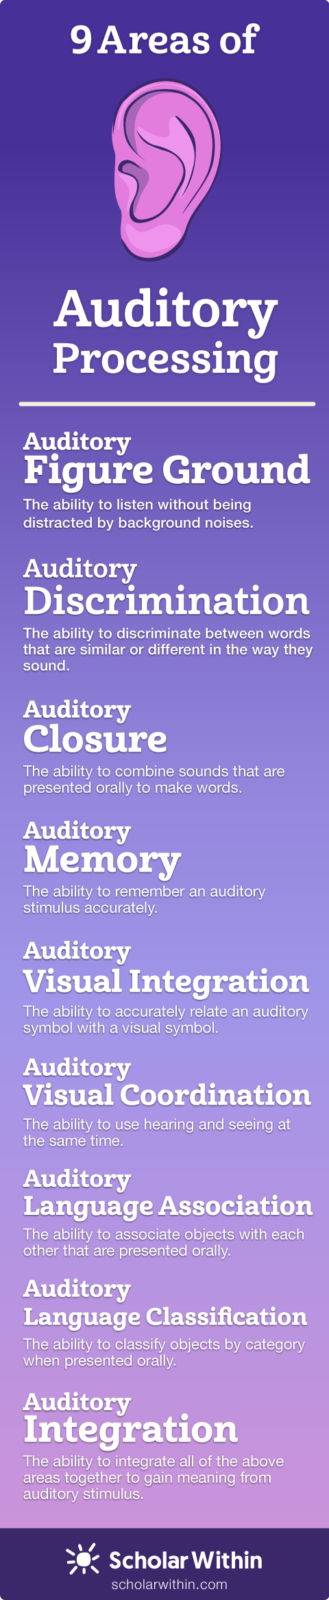 9 Areas of Auditory Processing